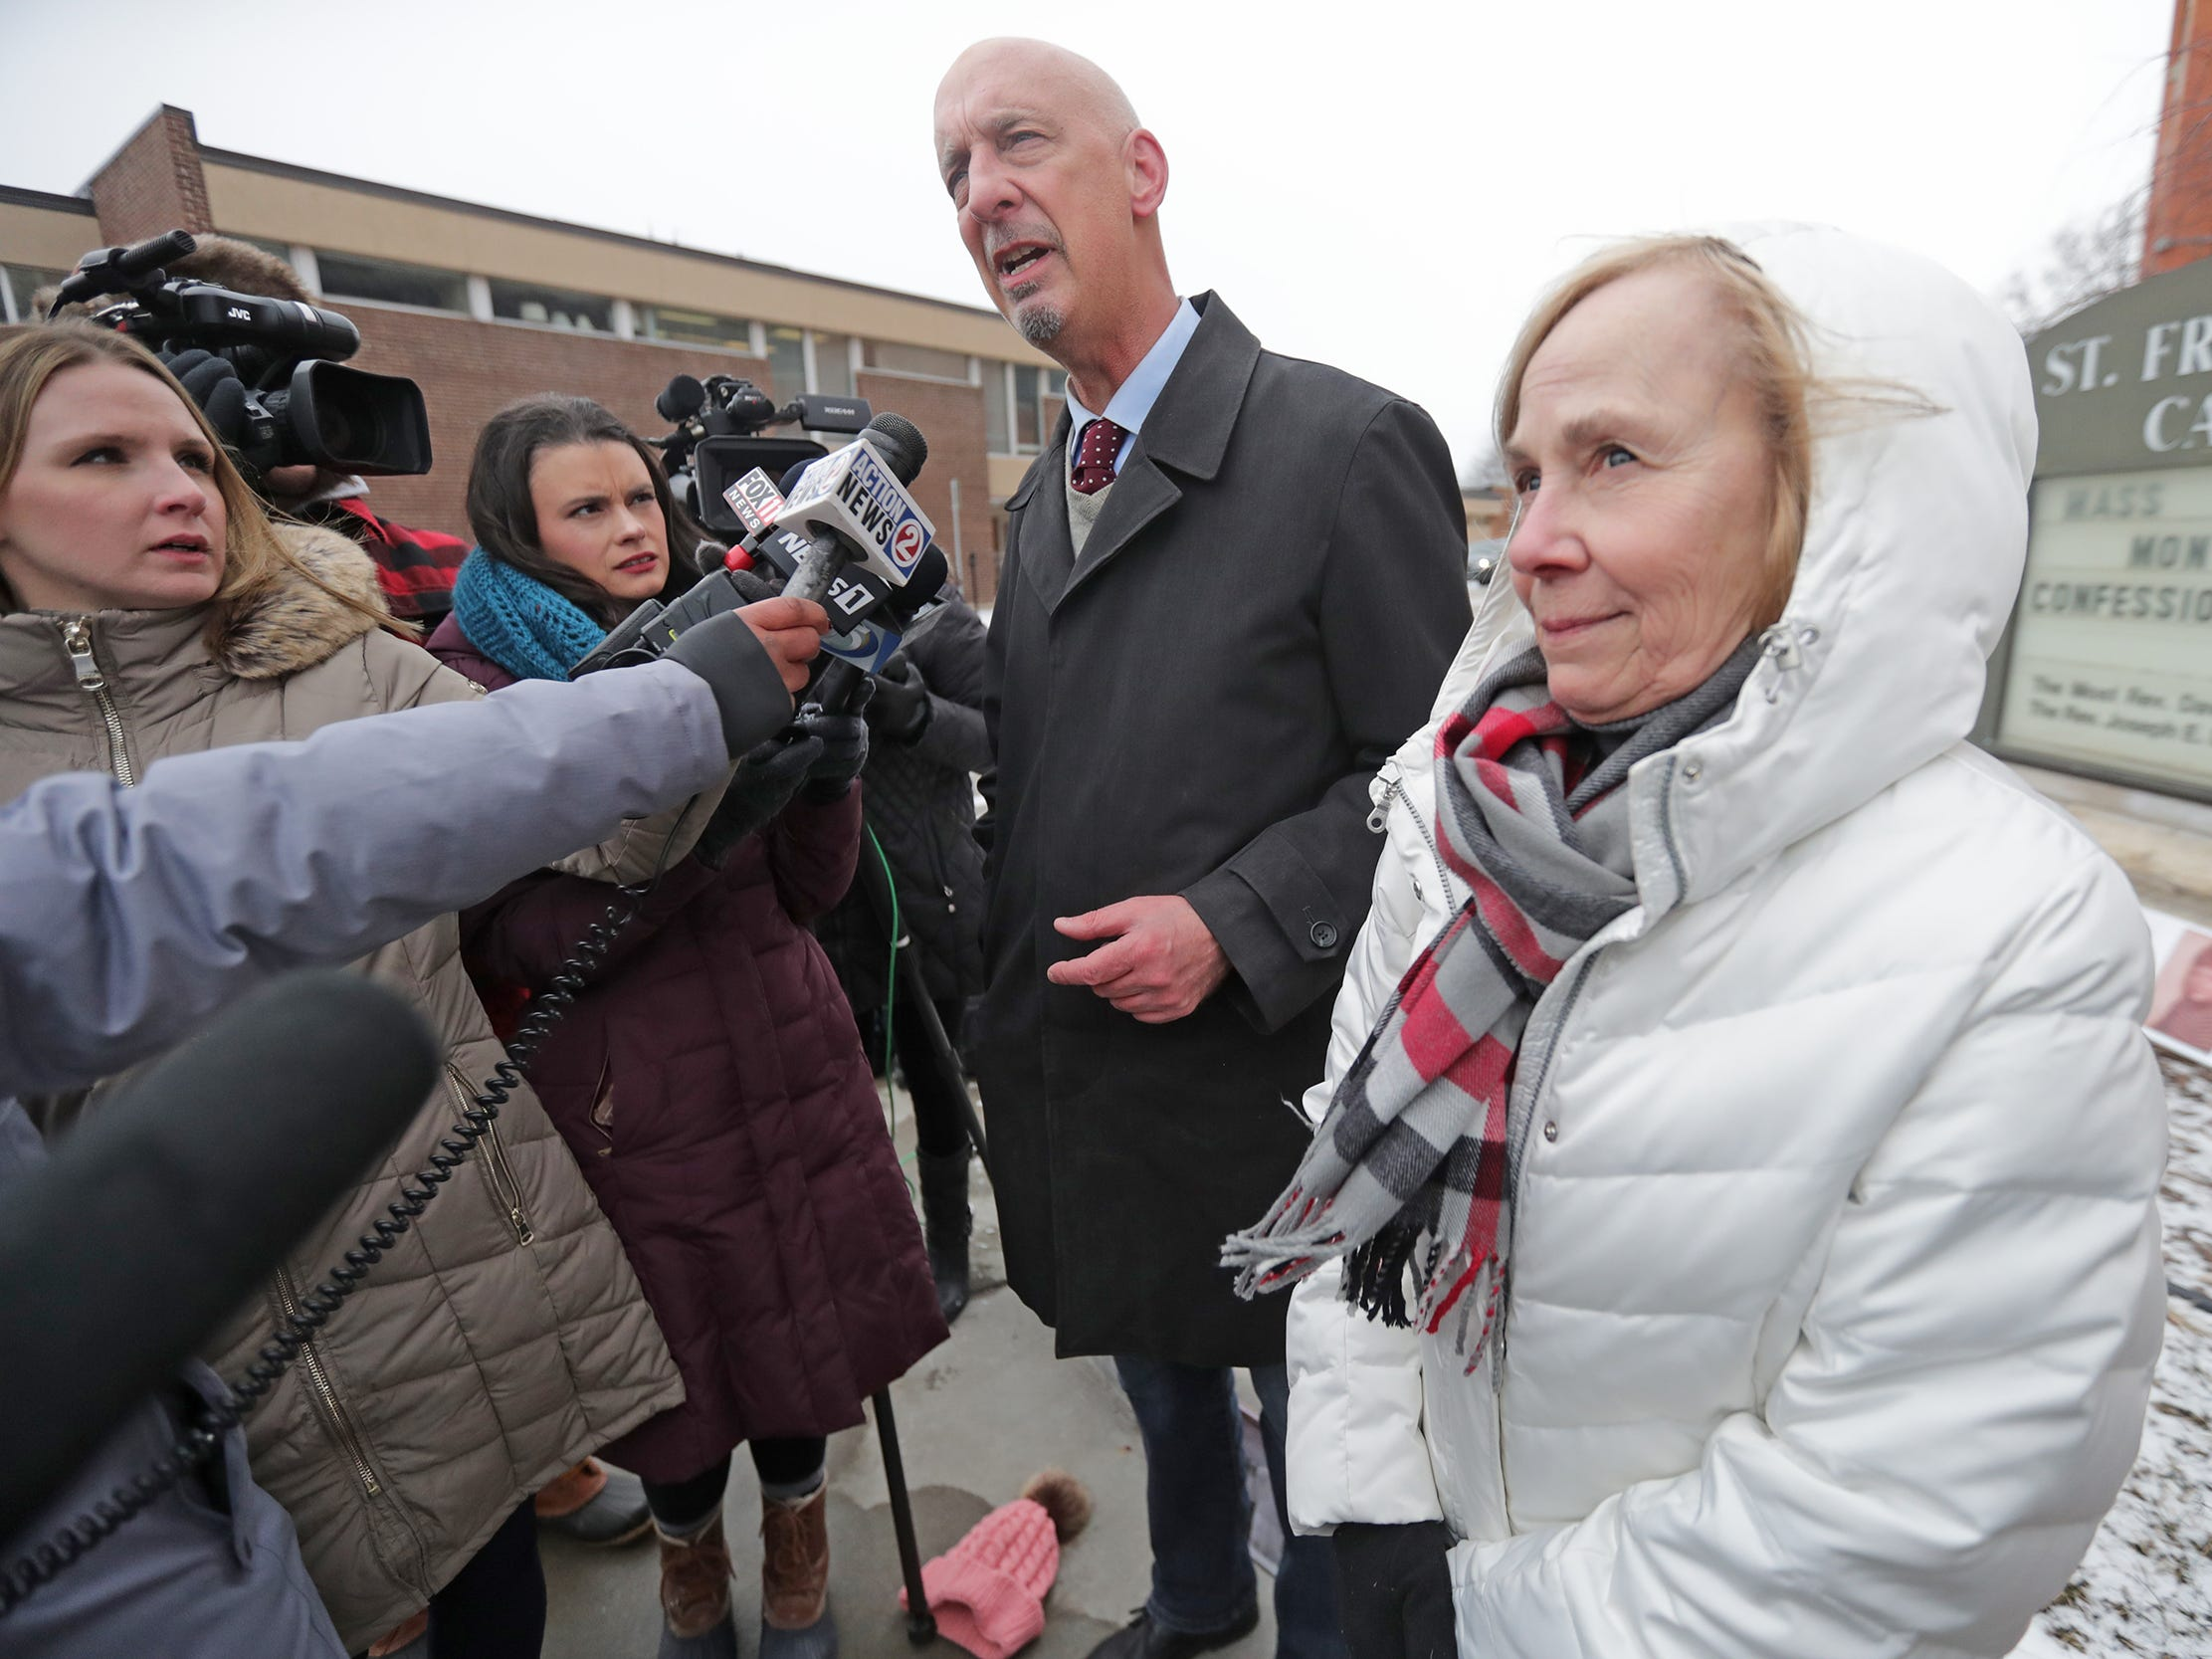 Alice Hodek, mother of a Green Bay abuse victim, stands in front of St. Francis Xavier Cathedral during a Jan. 18 press conference with Peter Isely of Survivors Network for those Abused by Priests.